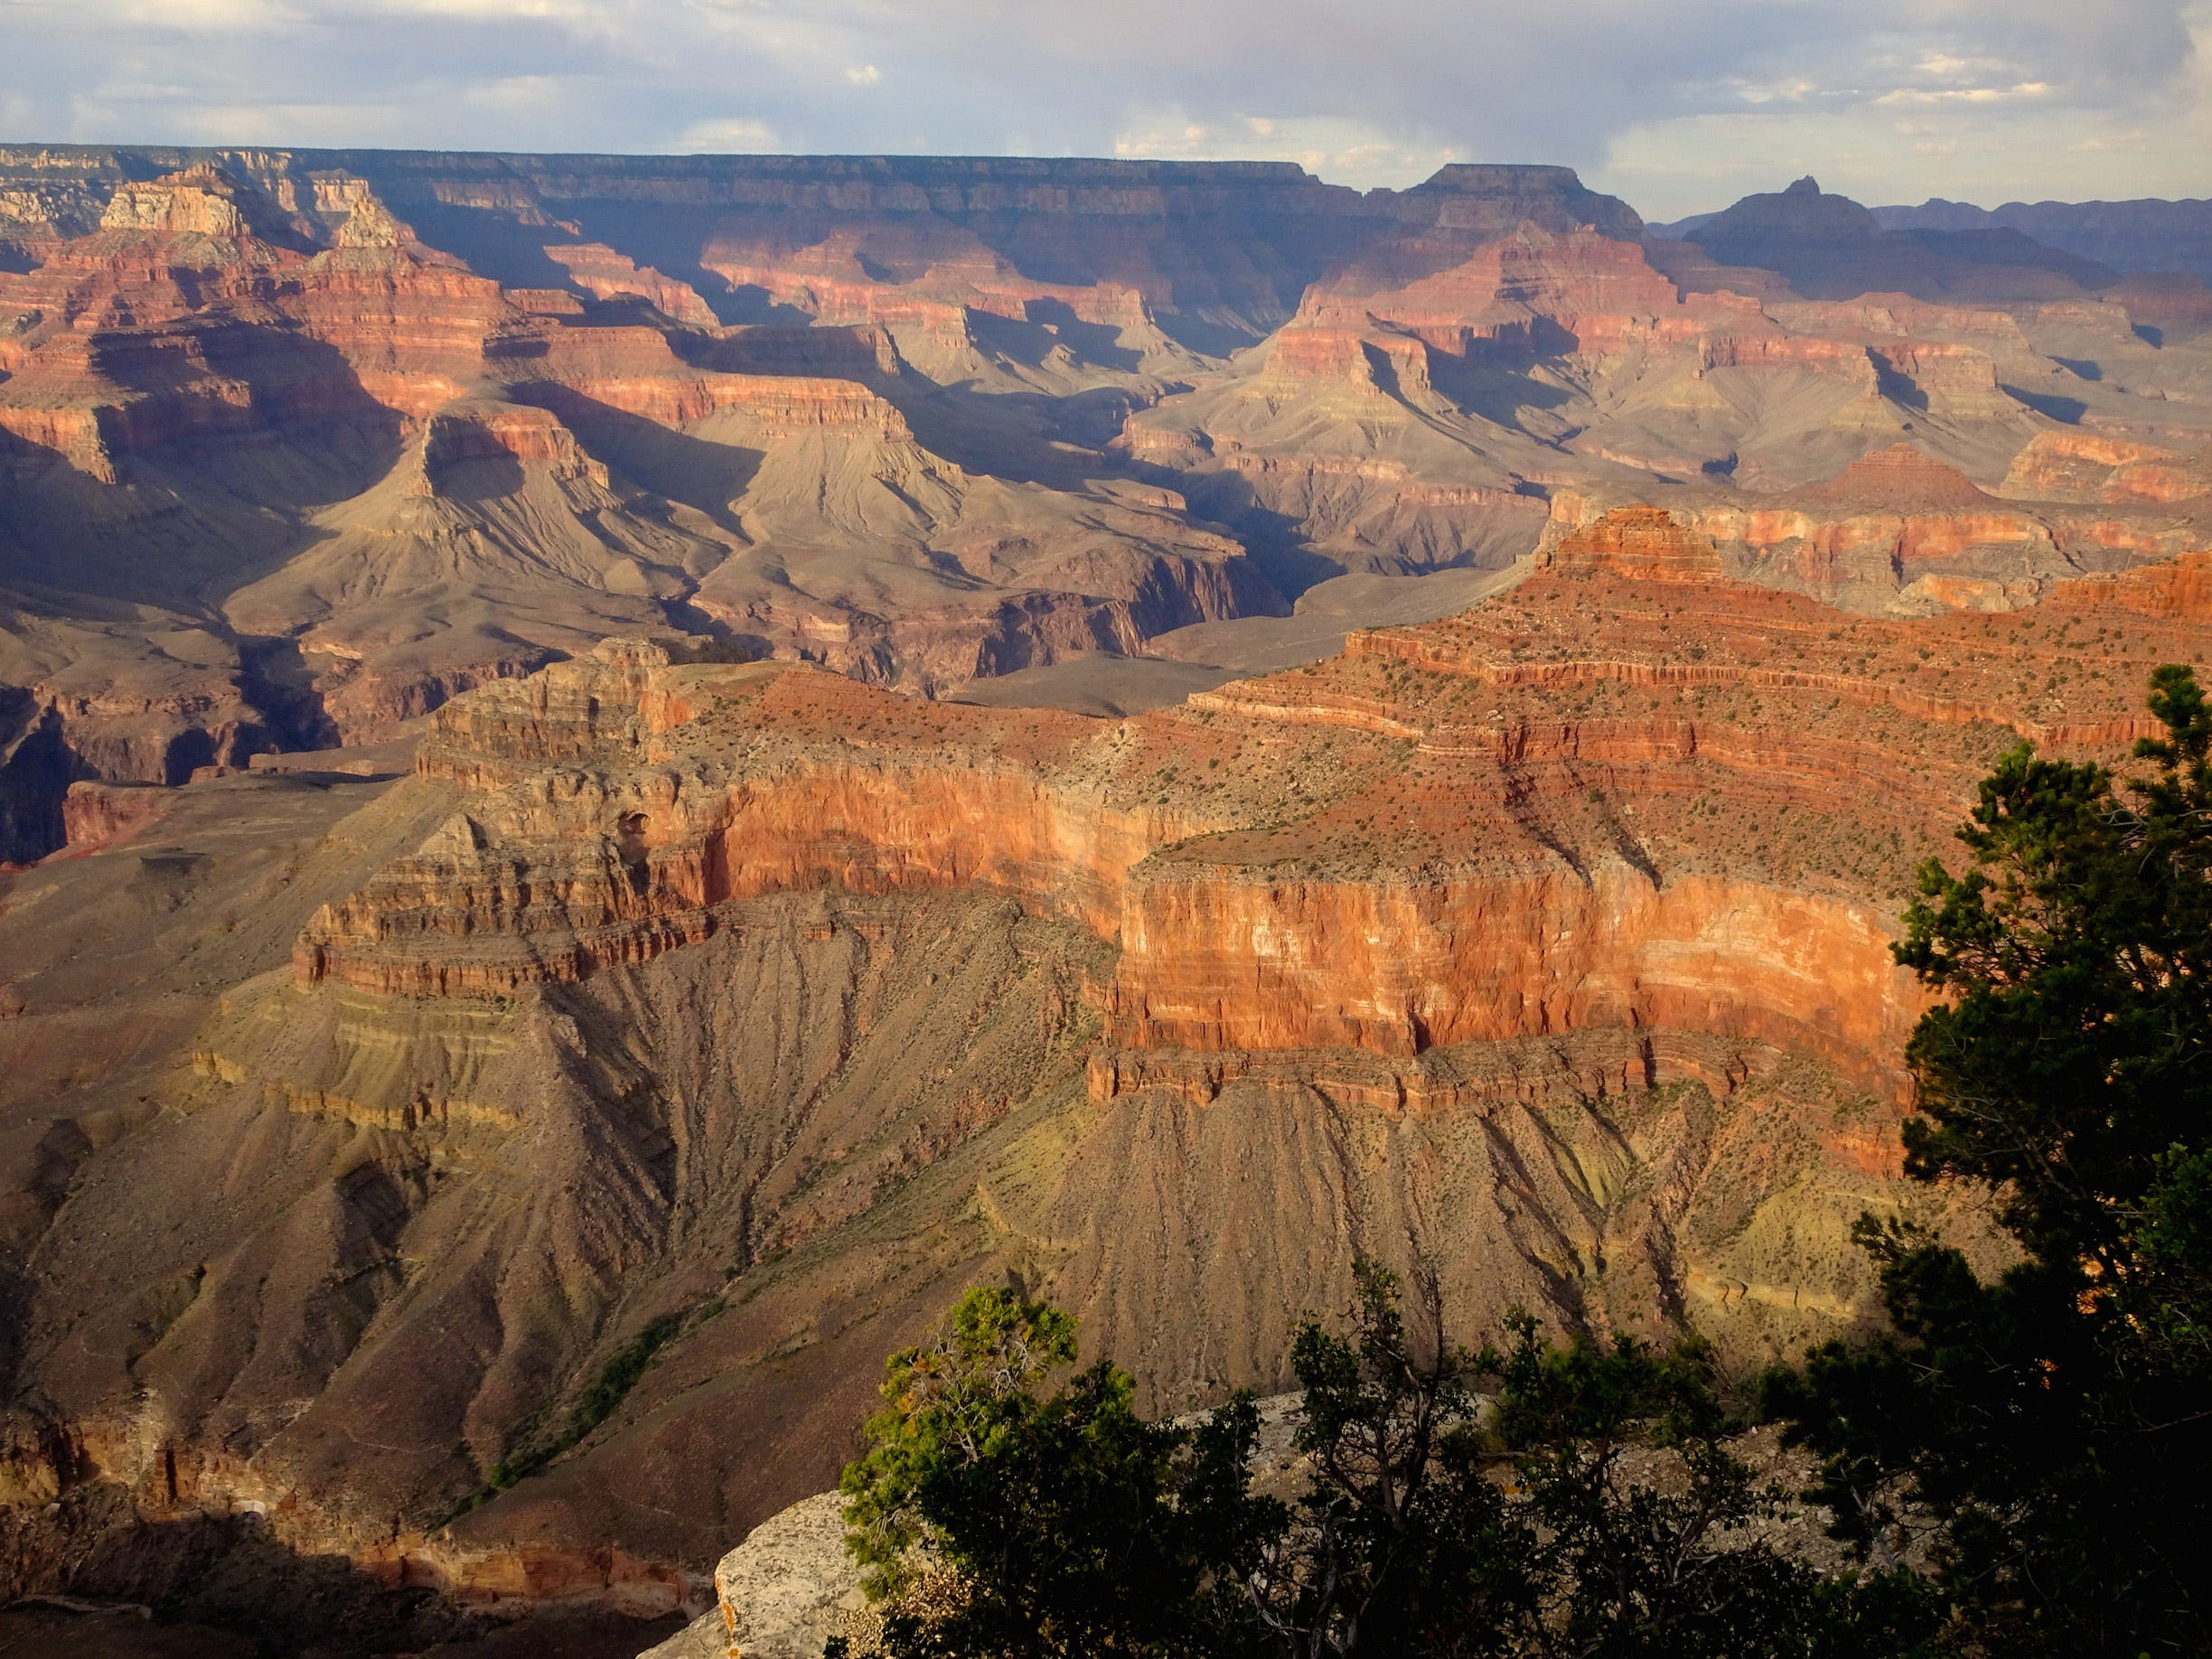 70-year-old woman dies after falling 200 feet from Grand Canyon's South Rim